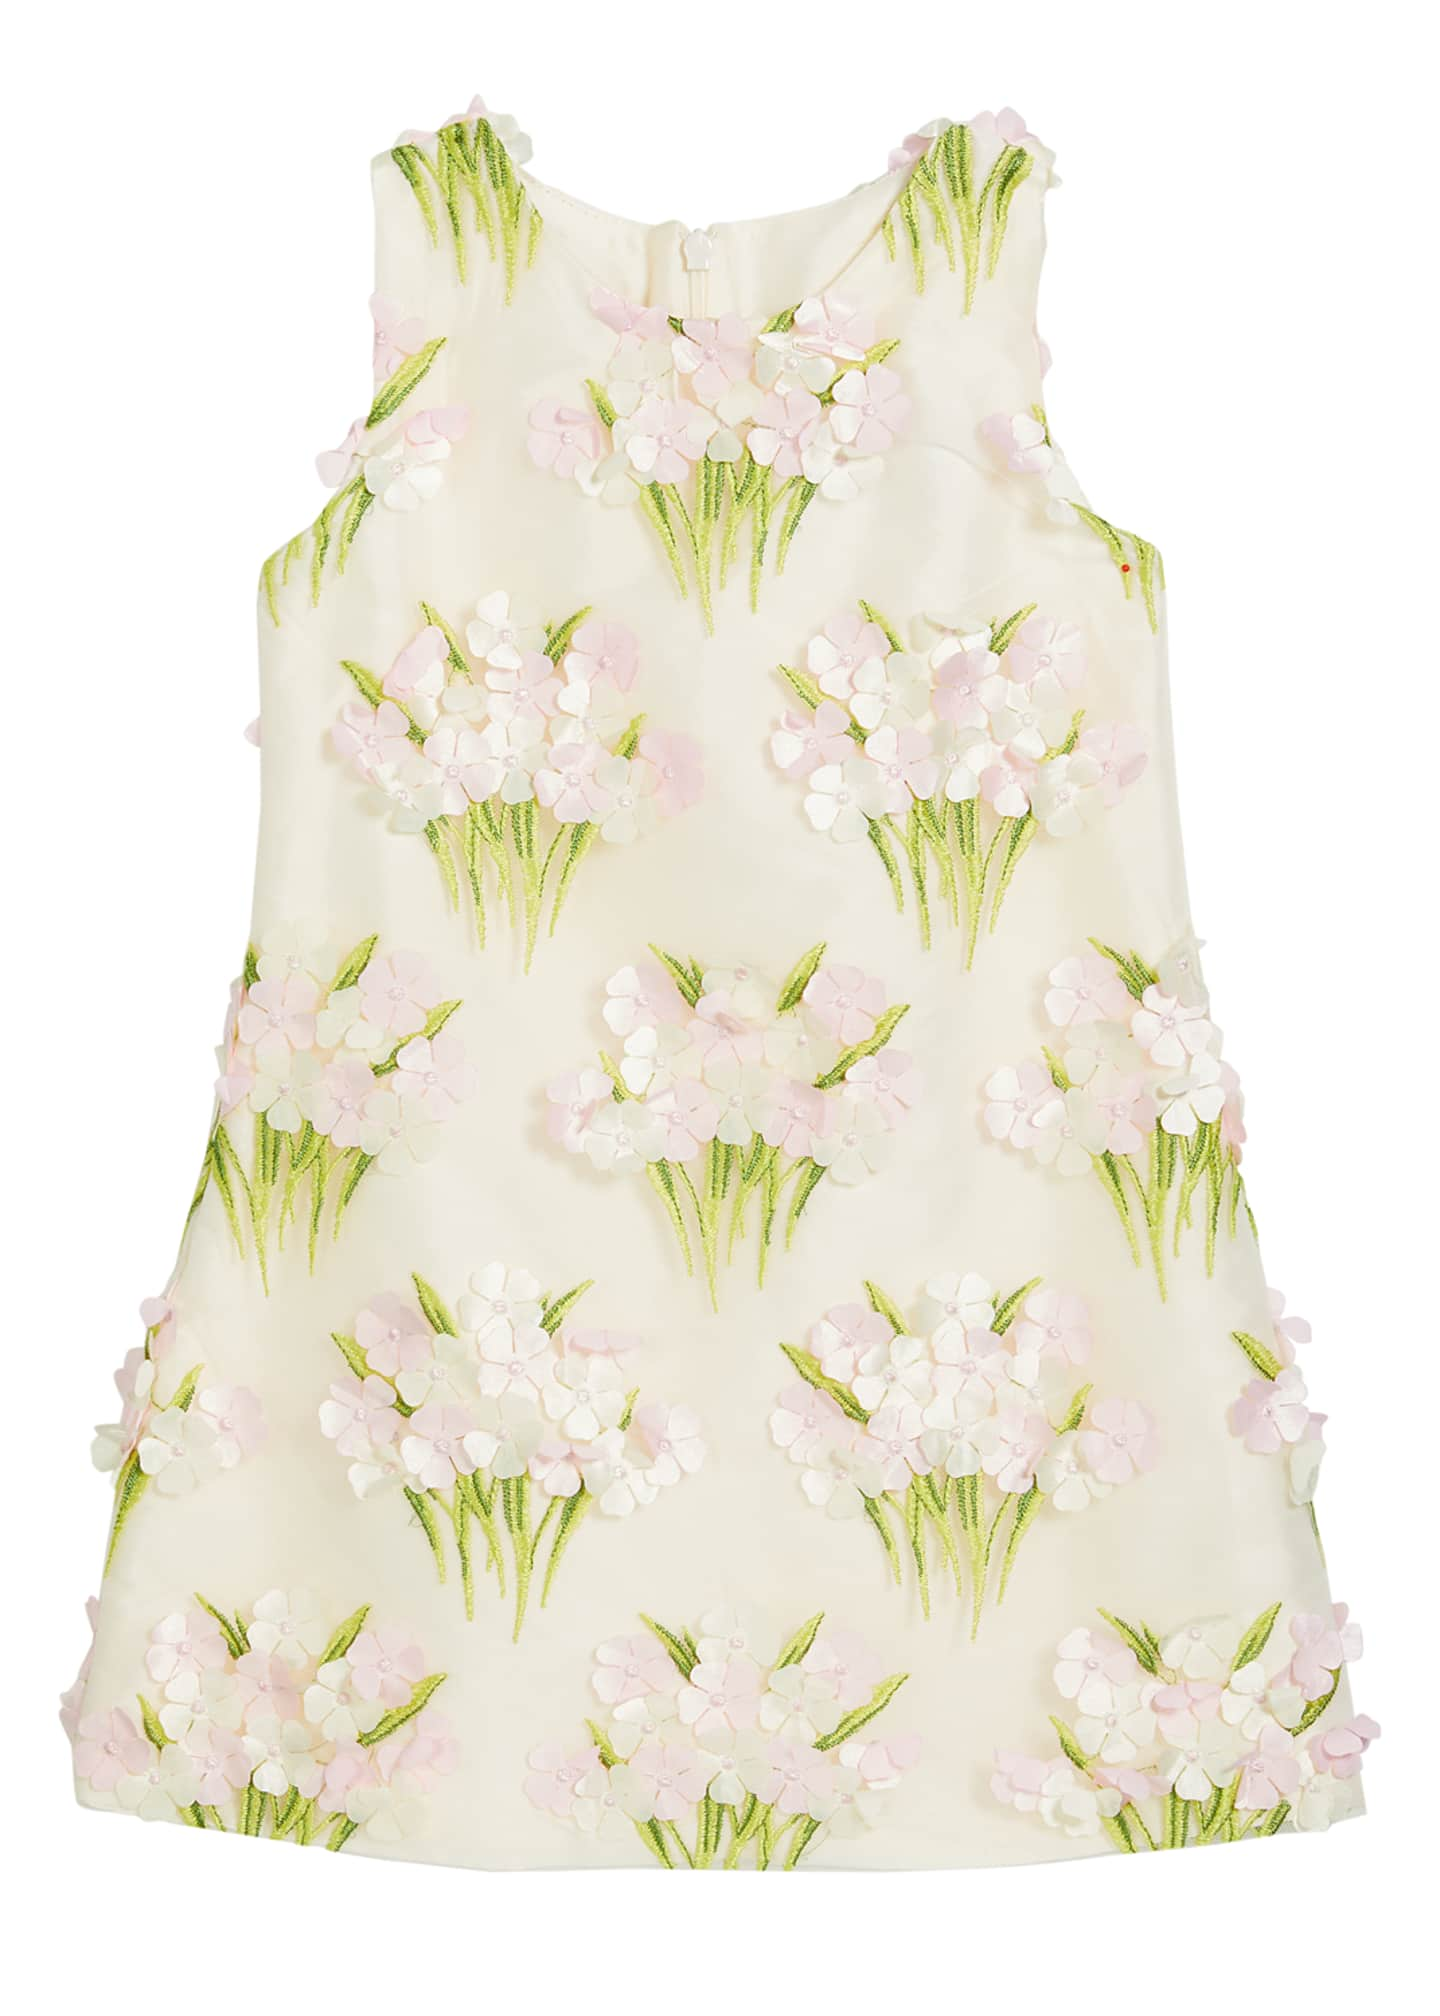 Image 1 of 1: Girl's Bouquet Floral Applique Sleeveless Dress, Size 4-6X